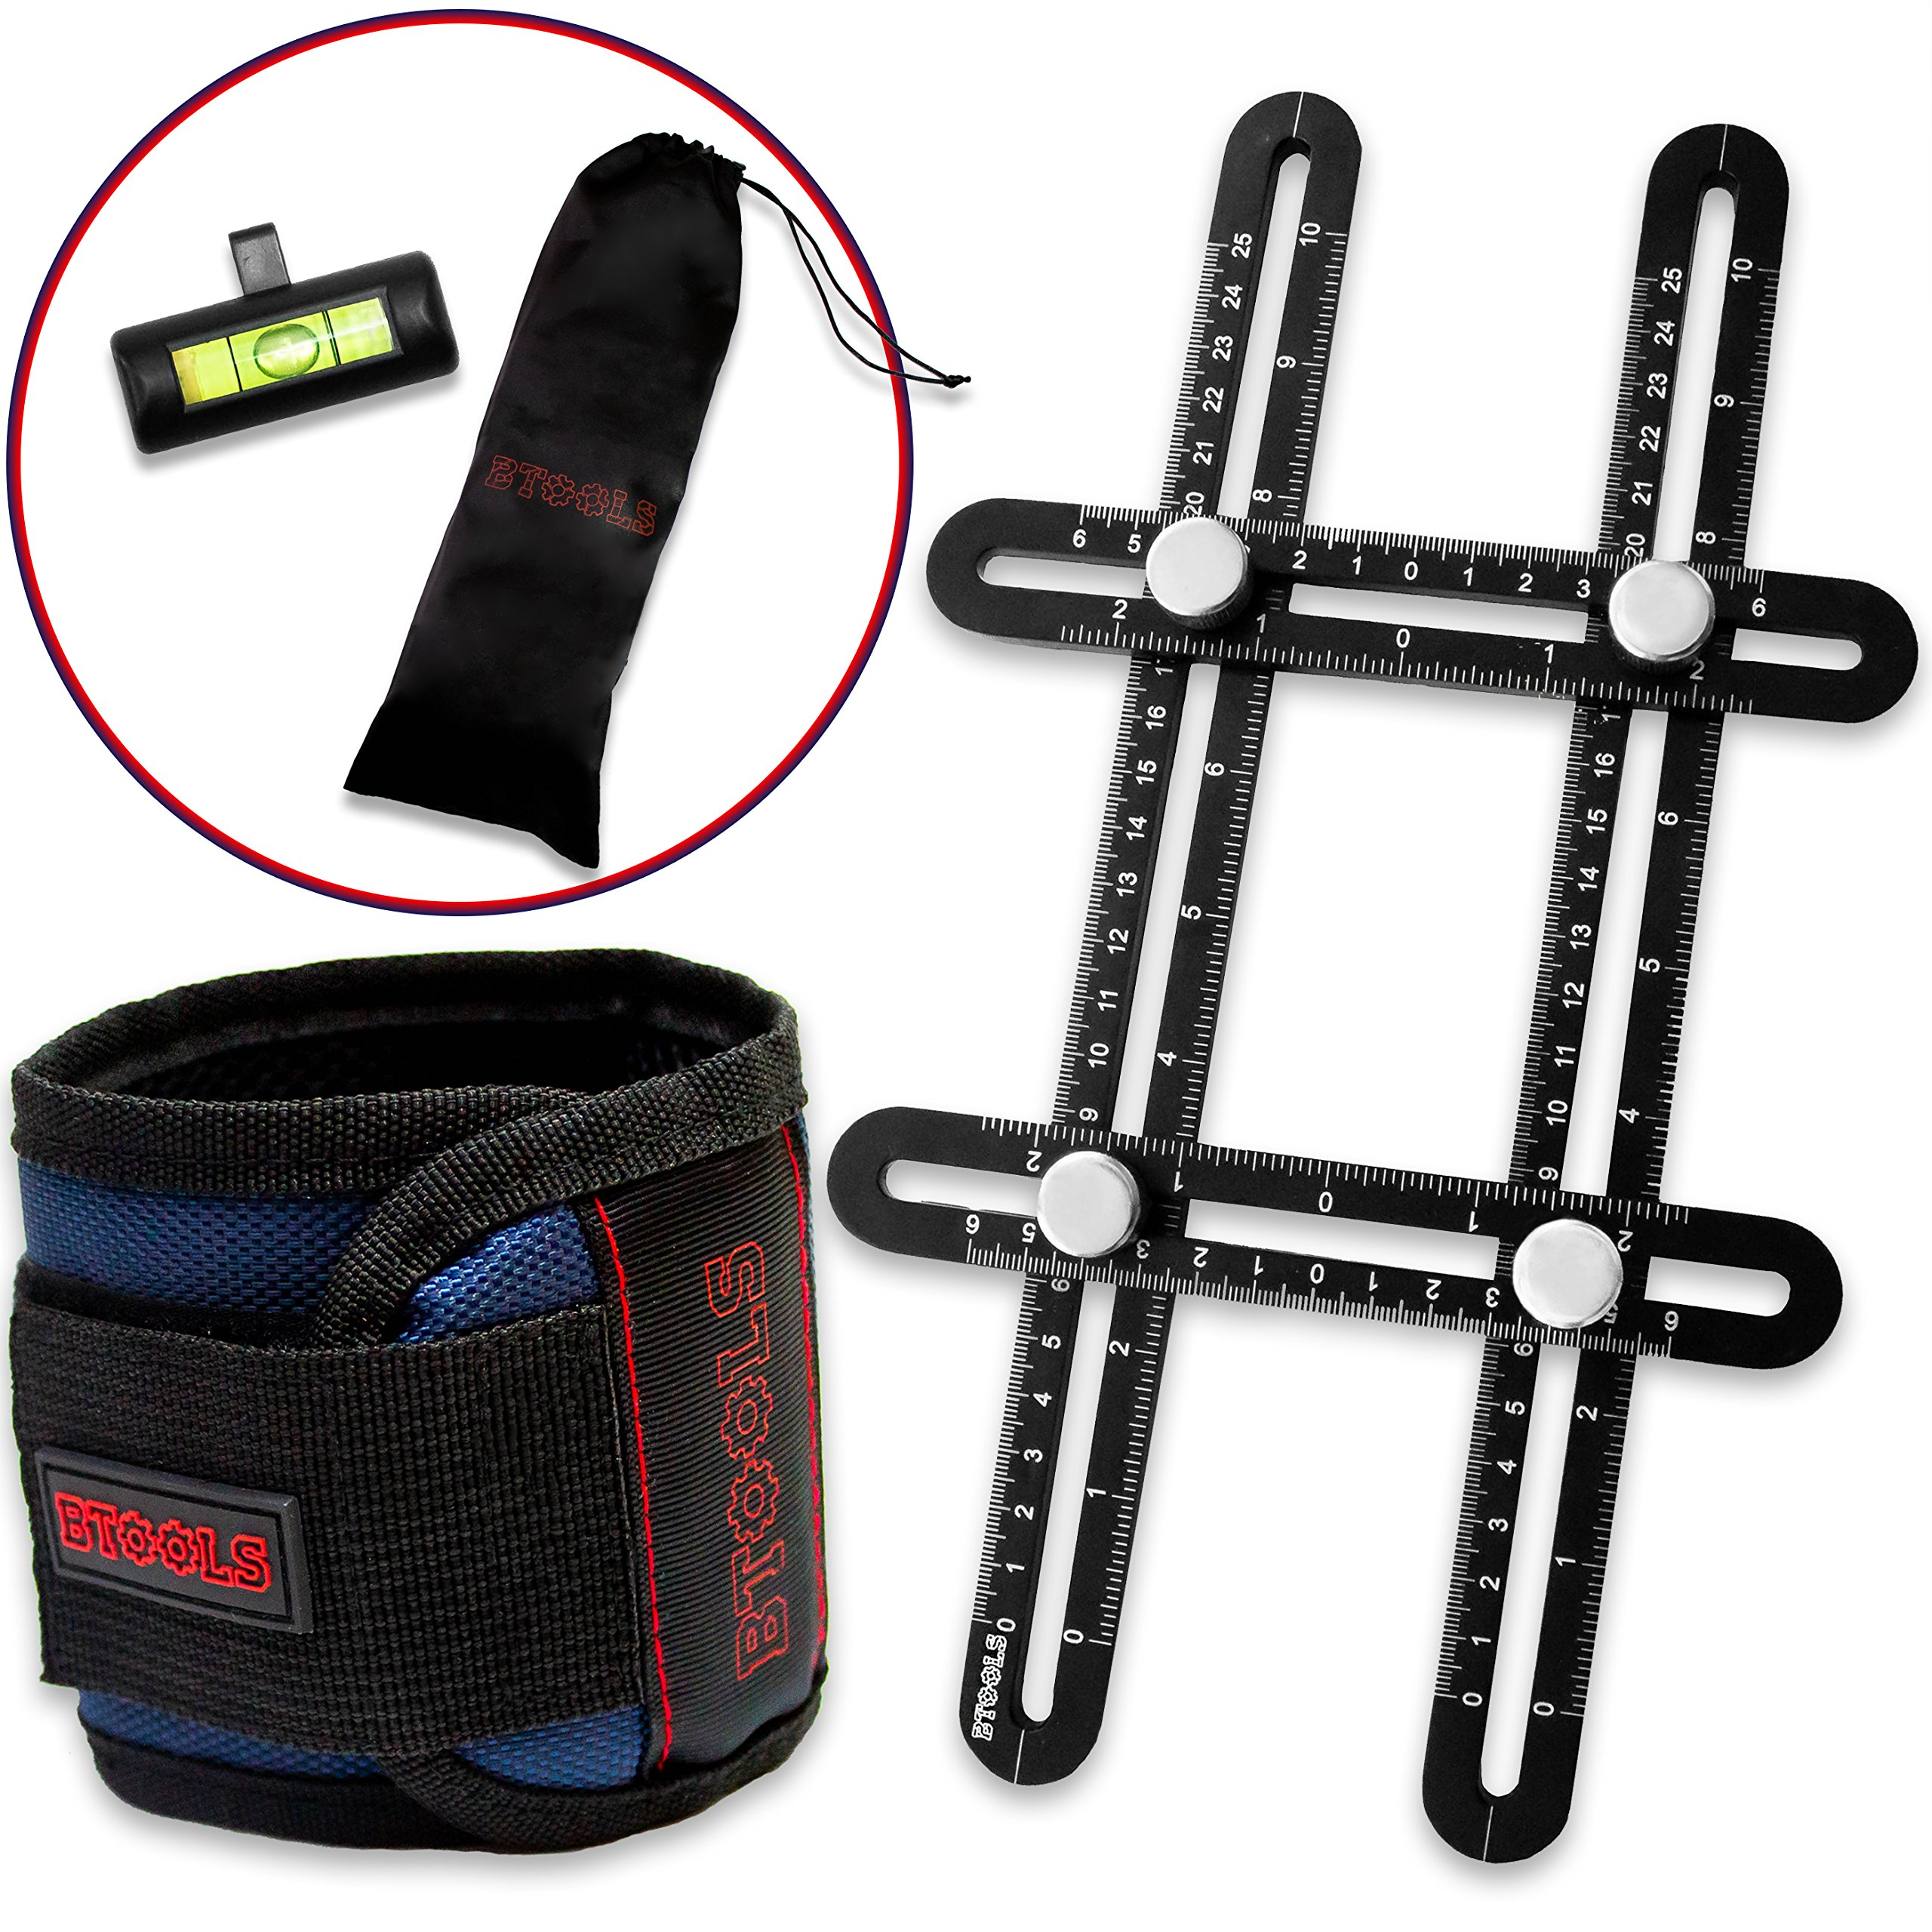 BTOOLS Template tool - Magnetic Wristband for holding screws - Multi Angle Measuring Ruler – Angleizer Template tool –Upgraded Aluminum Alloy - 6 Super Powerful Magnets w/Instruction Manual- gift tool